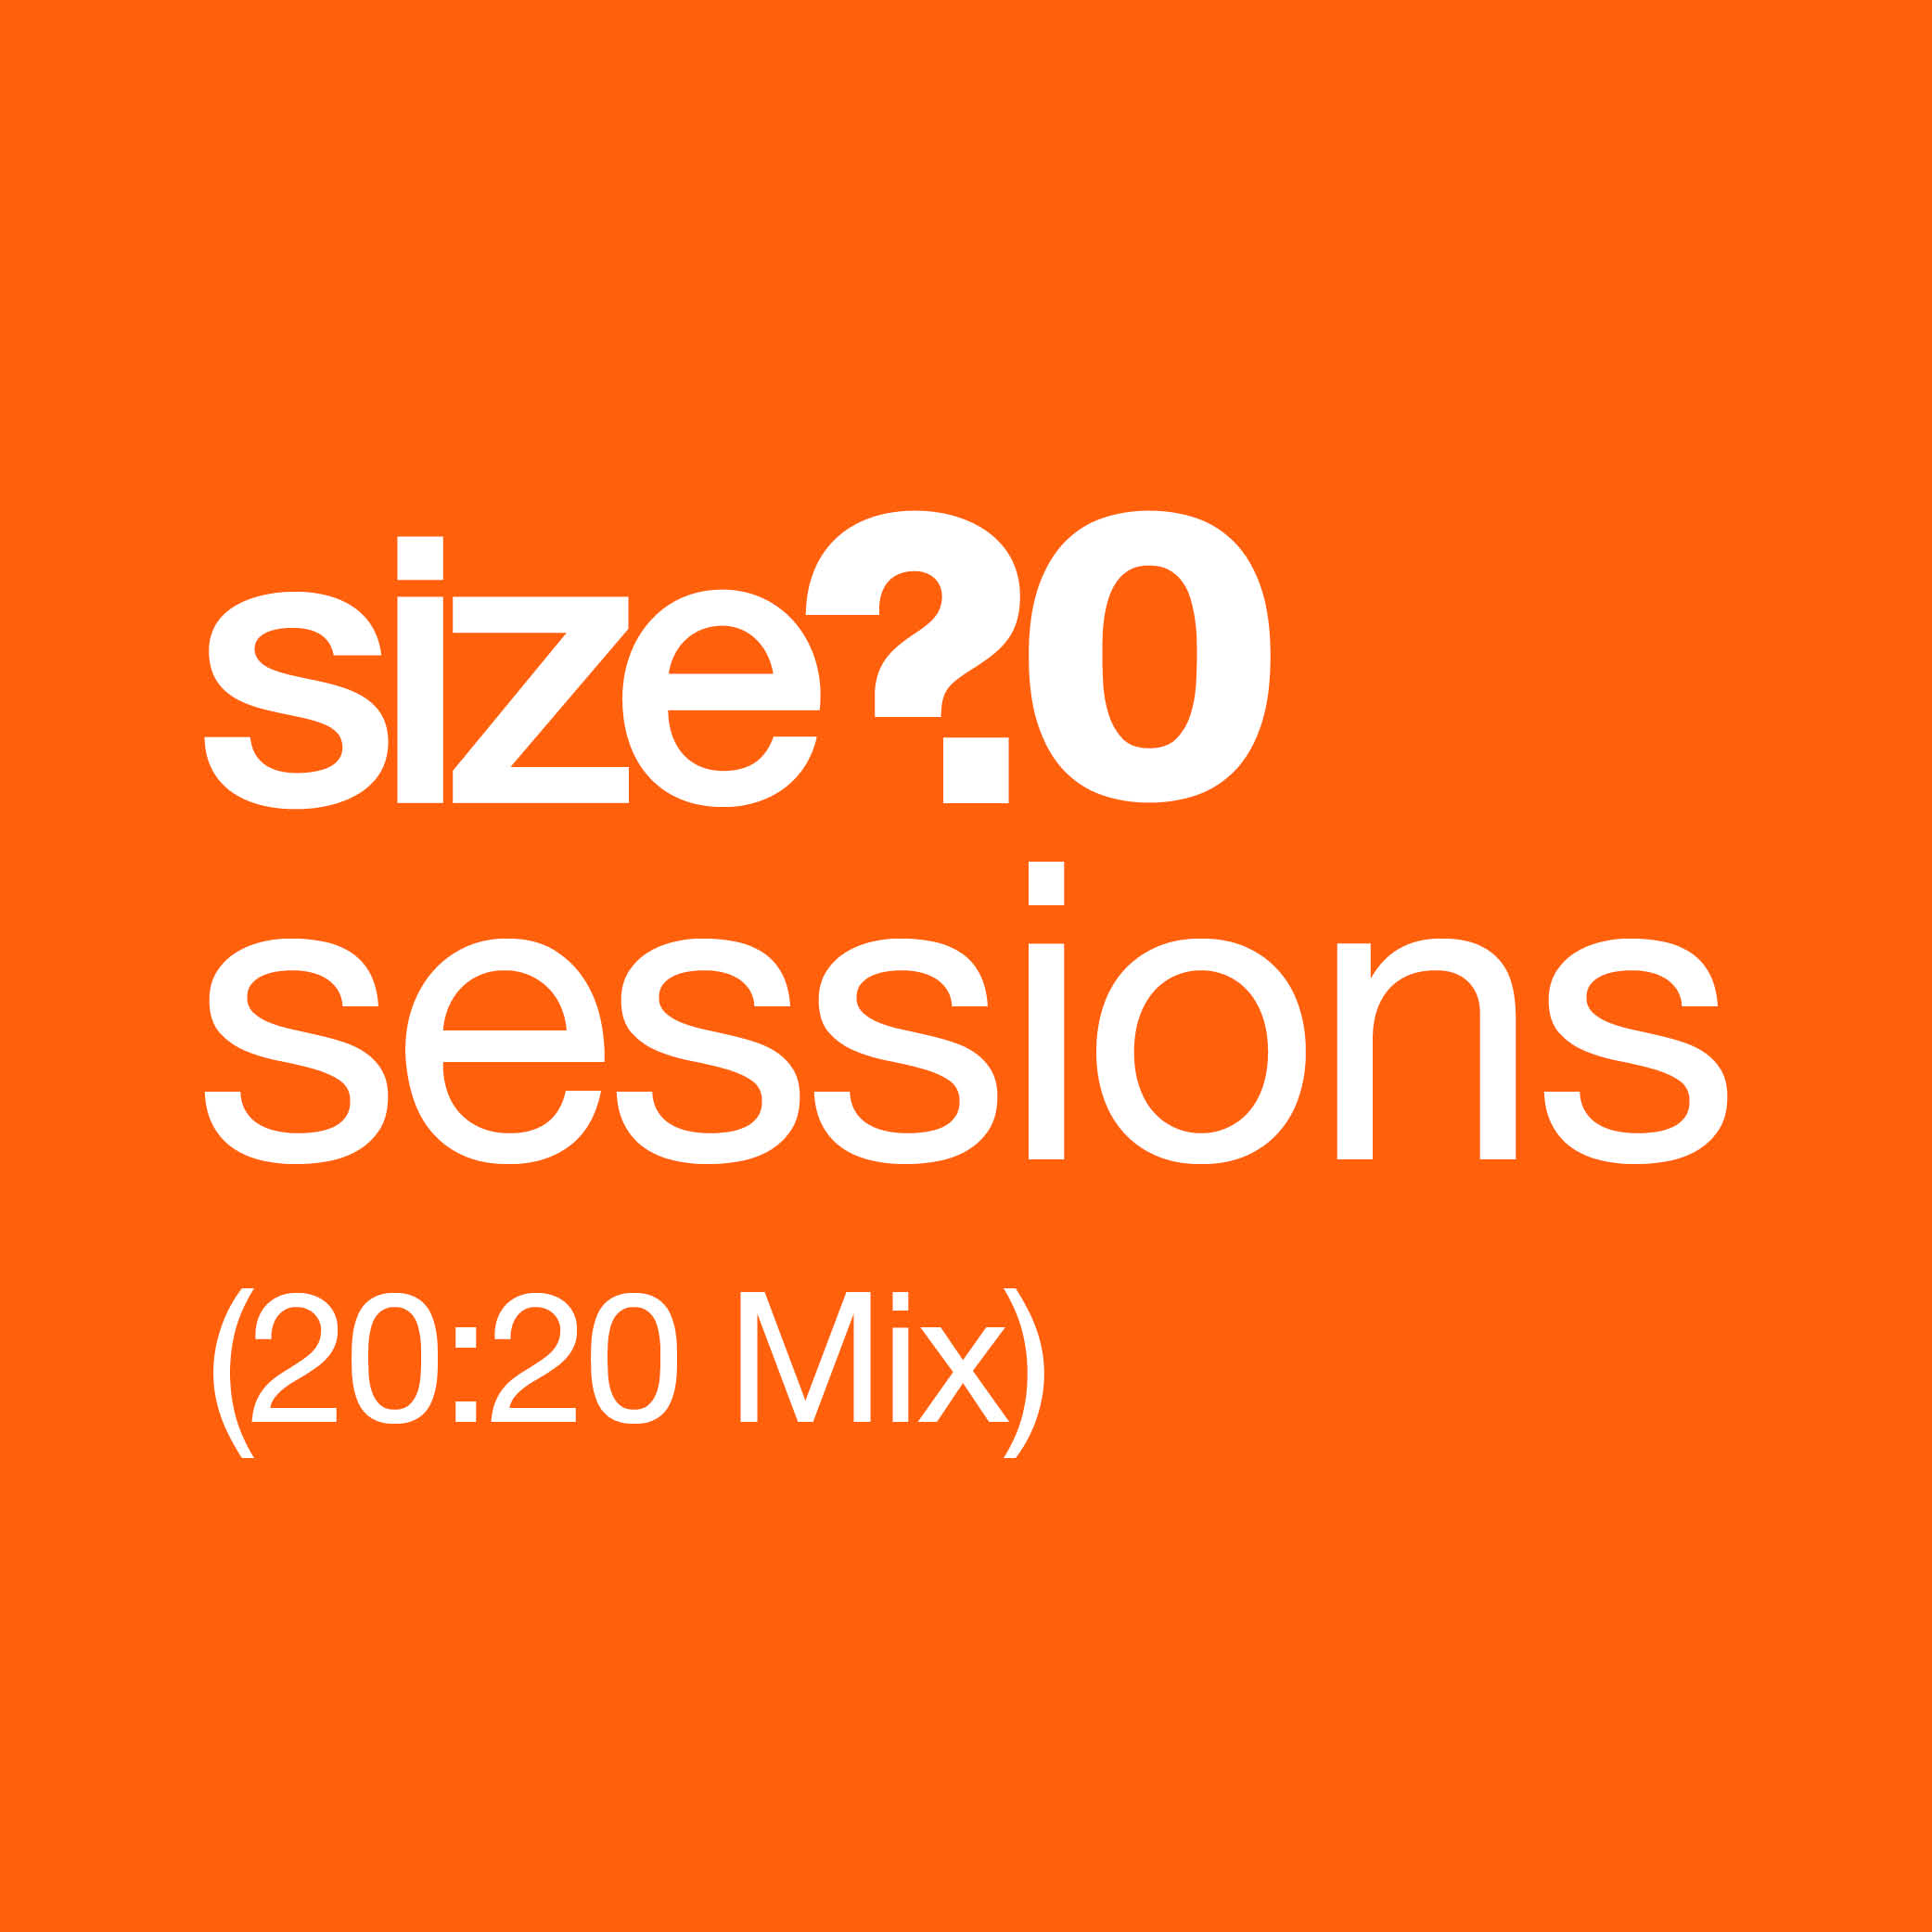 The size? sessions (20:20 Mix) hub